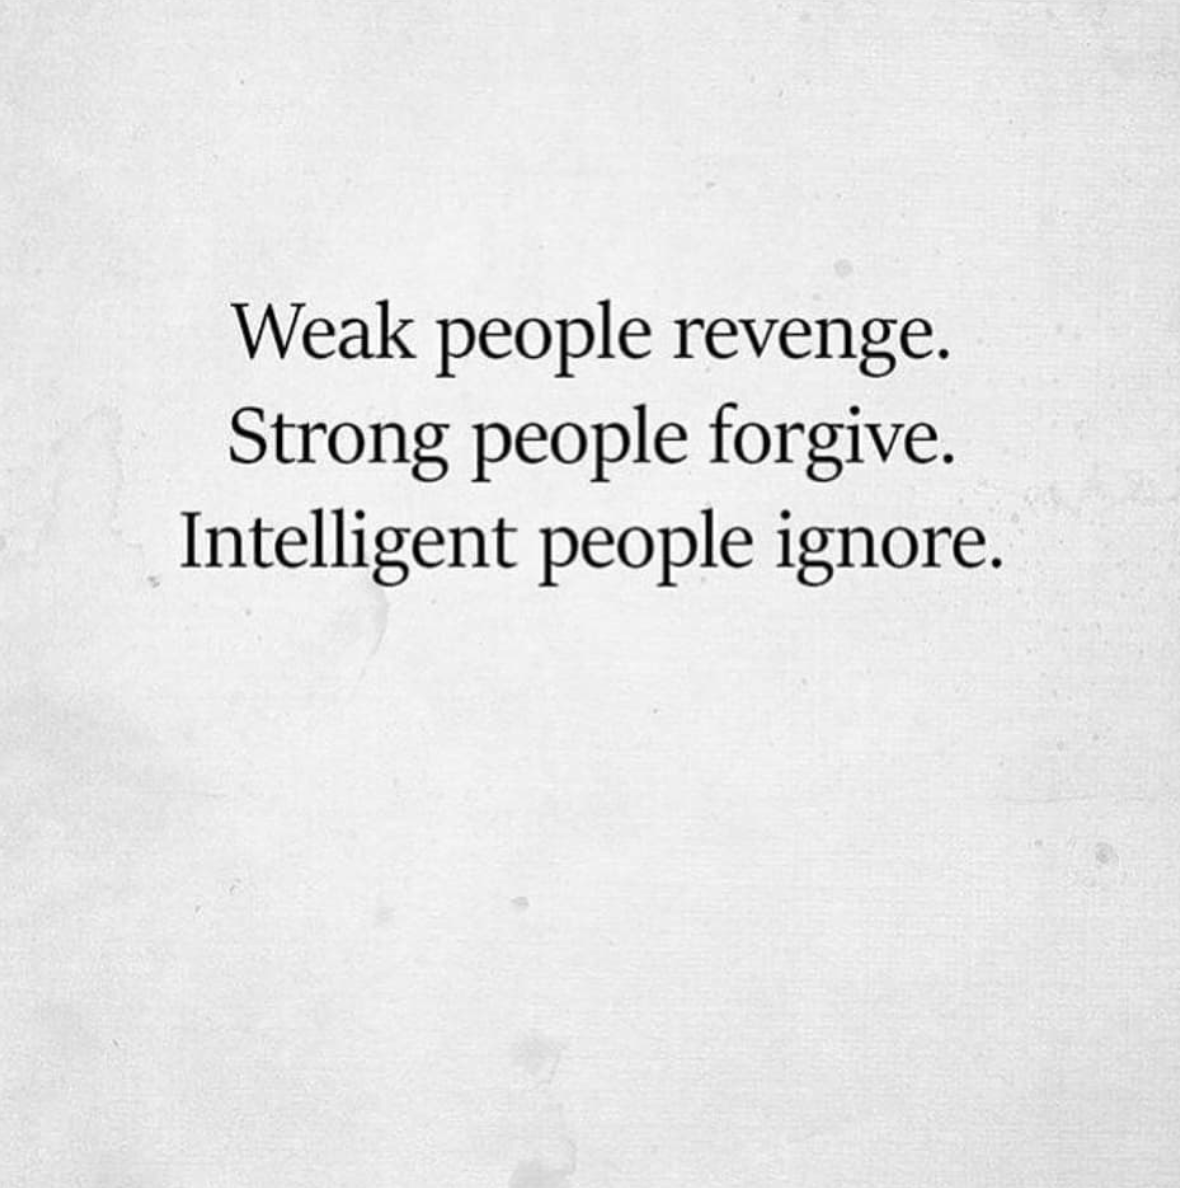 [Image] Weak people revenge. Strong people forgive. Intelligent people ignore.